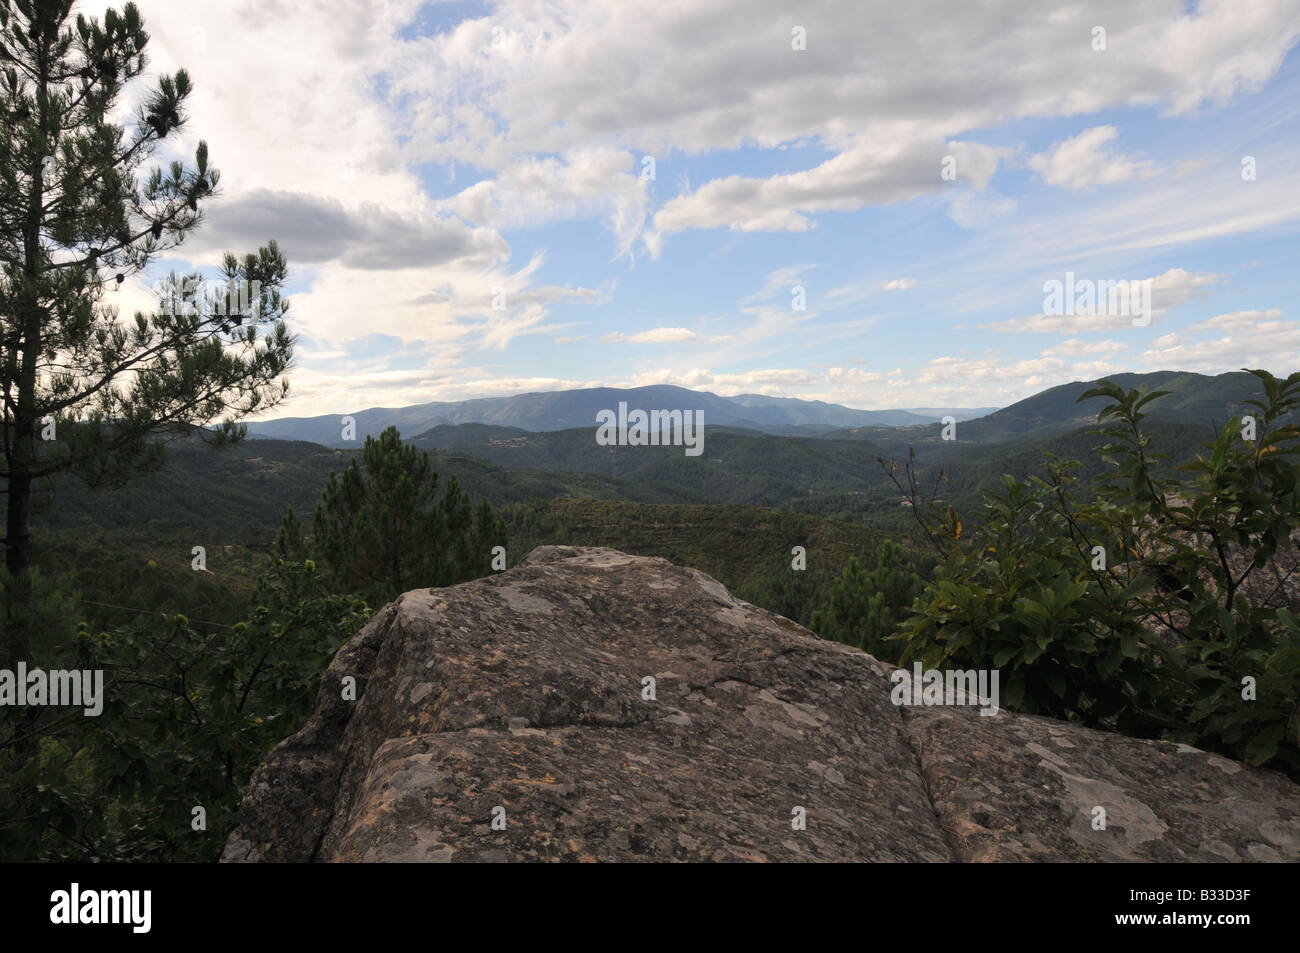 Typical view of the scenery of the Cévennes region of France. This is the view from neat to the Chapell St - Stock Image